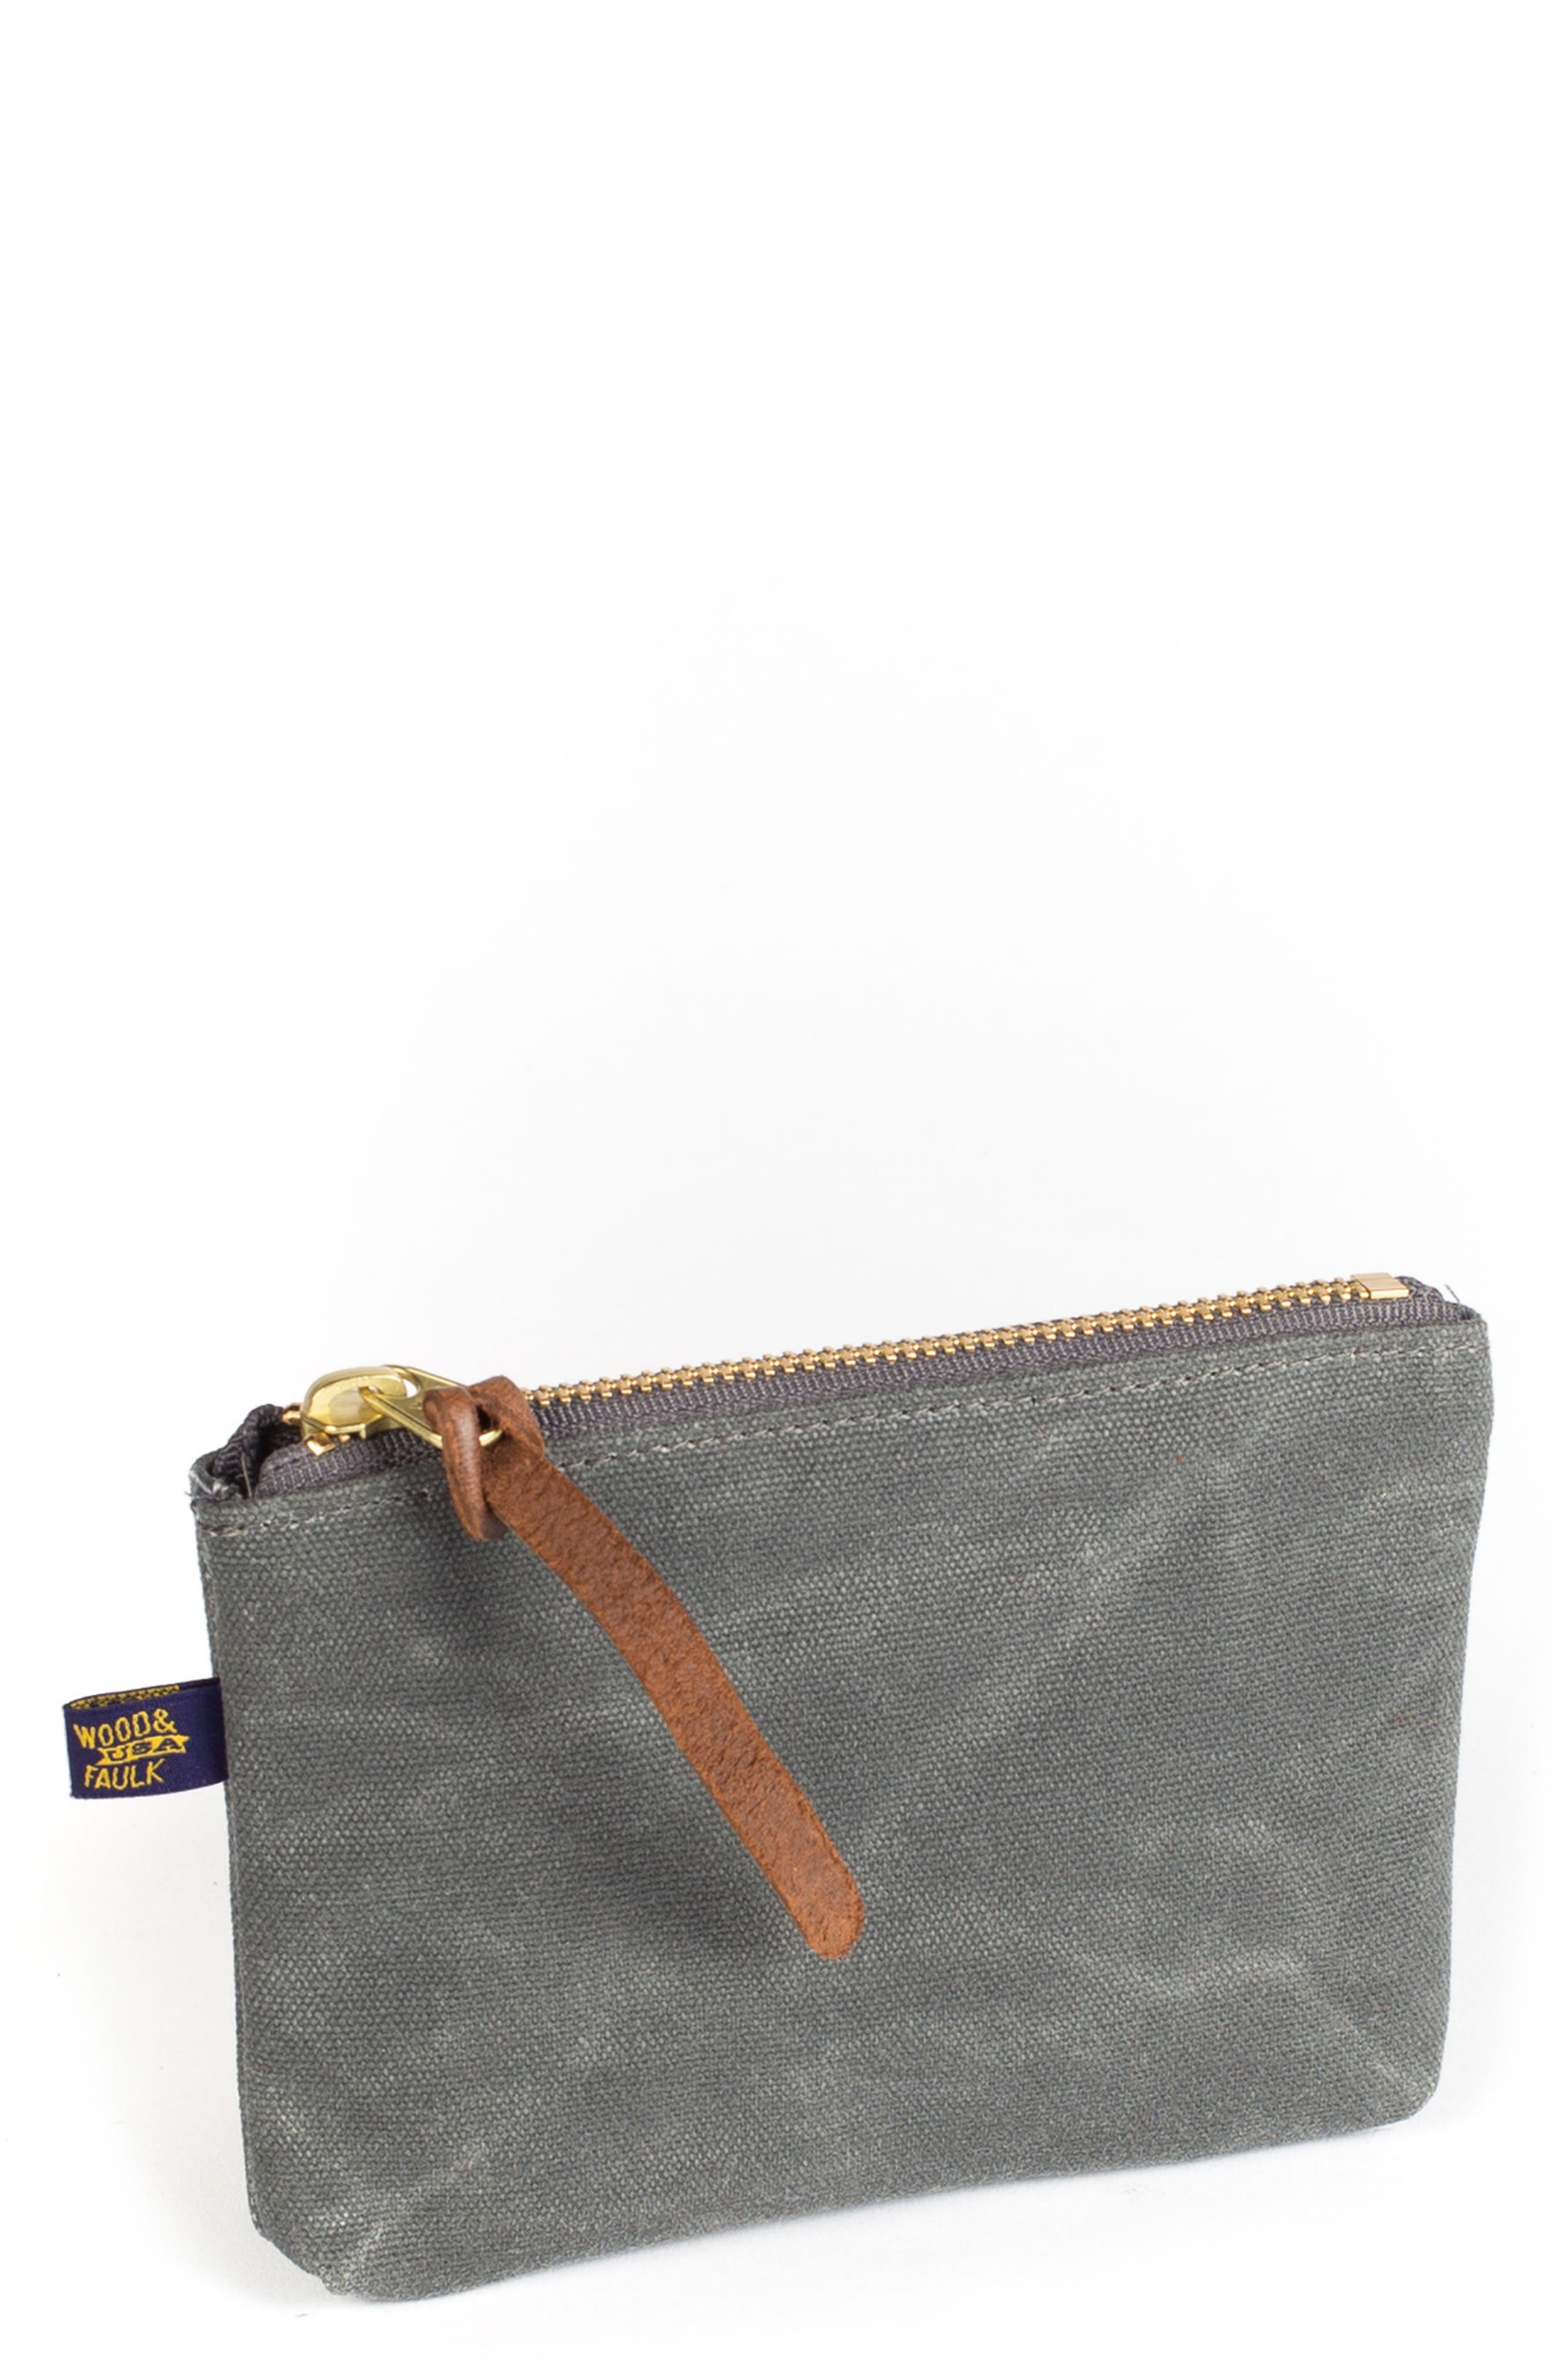 Main Image - Wood&Faulk Waxed Canvas Zip Pouch